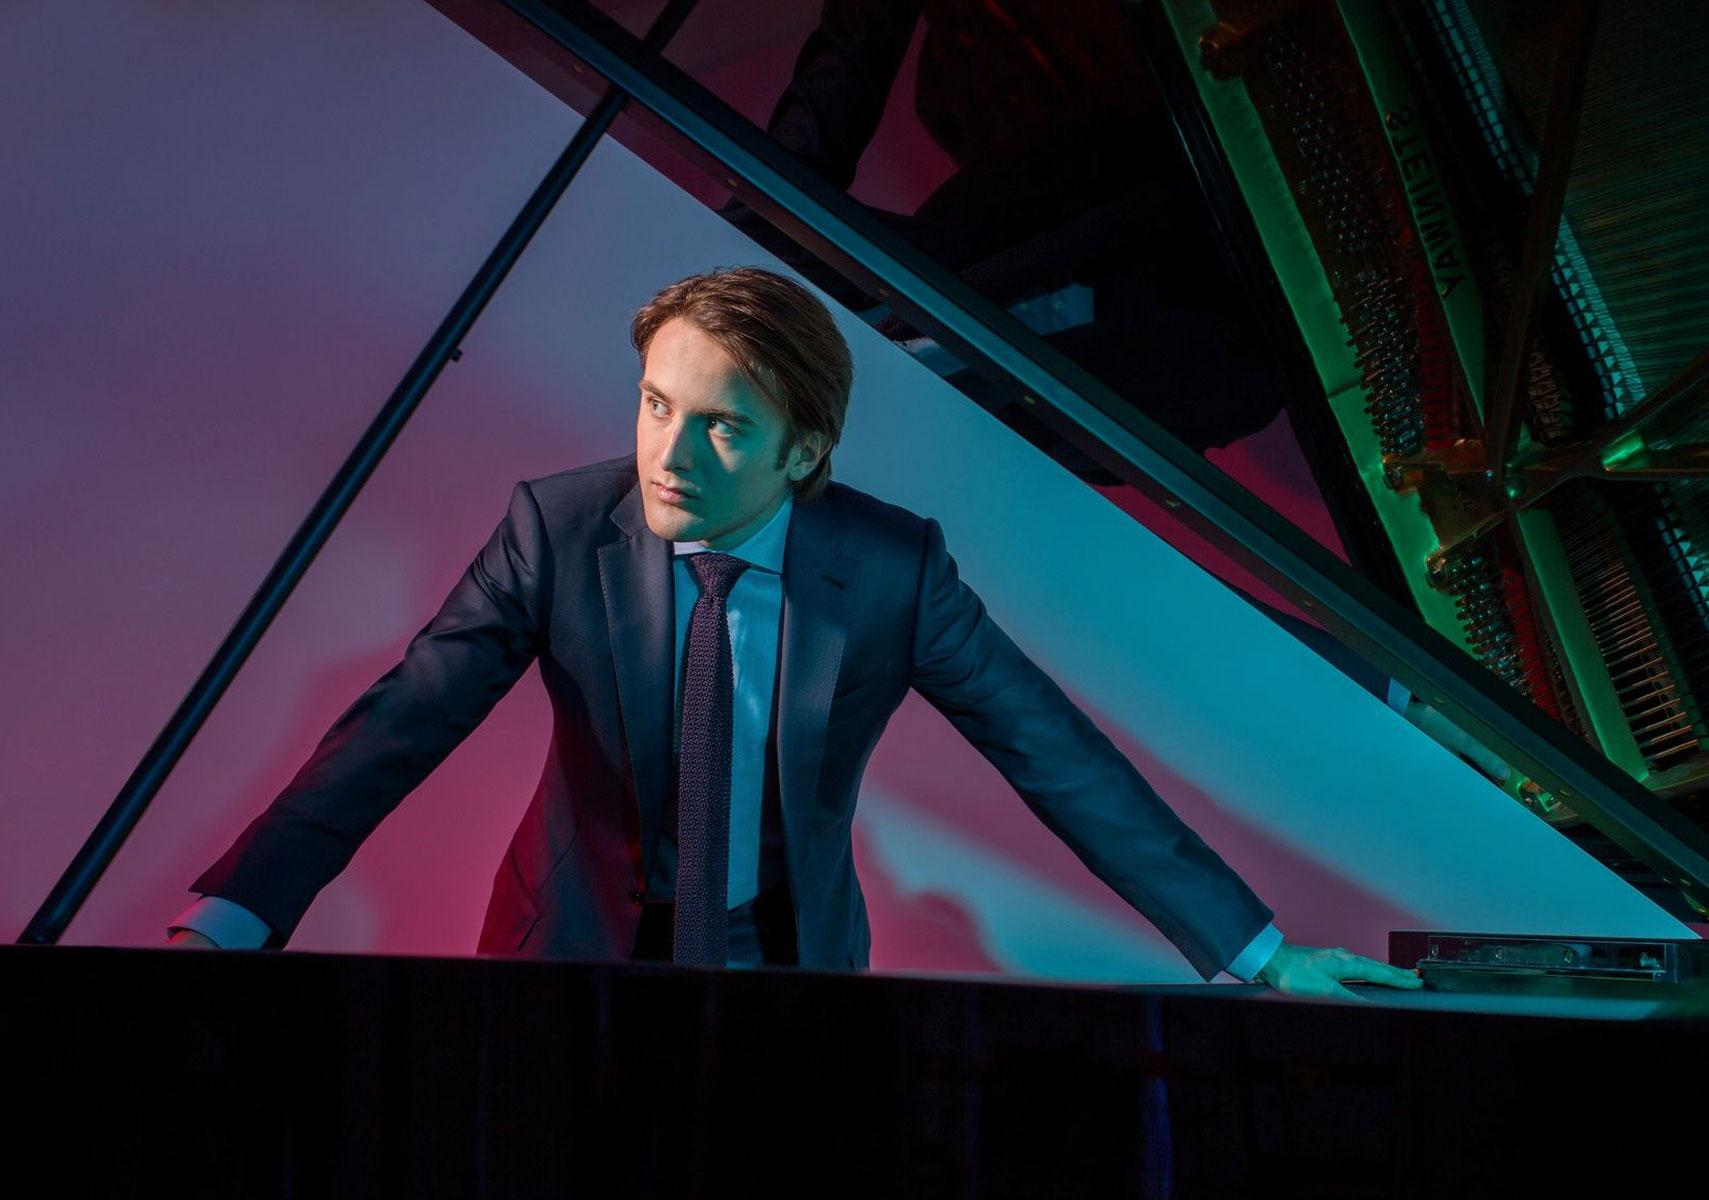 Music Break: Revisit Pianist Daniil Trifonov Playing Rachmaninoff